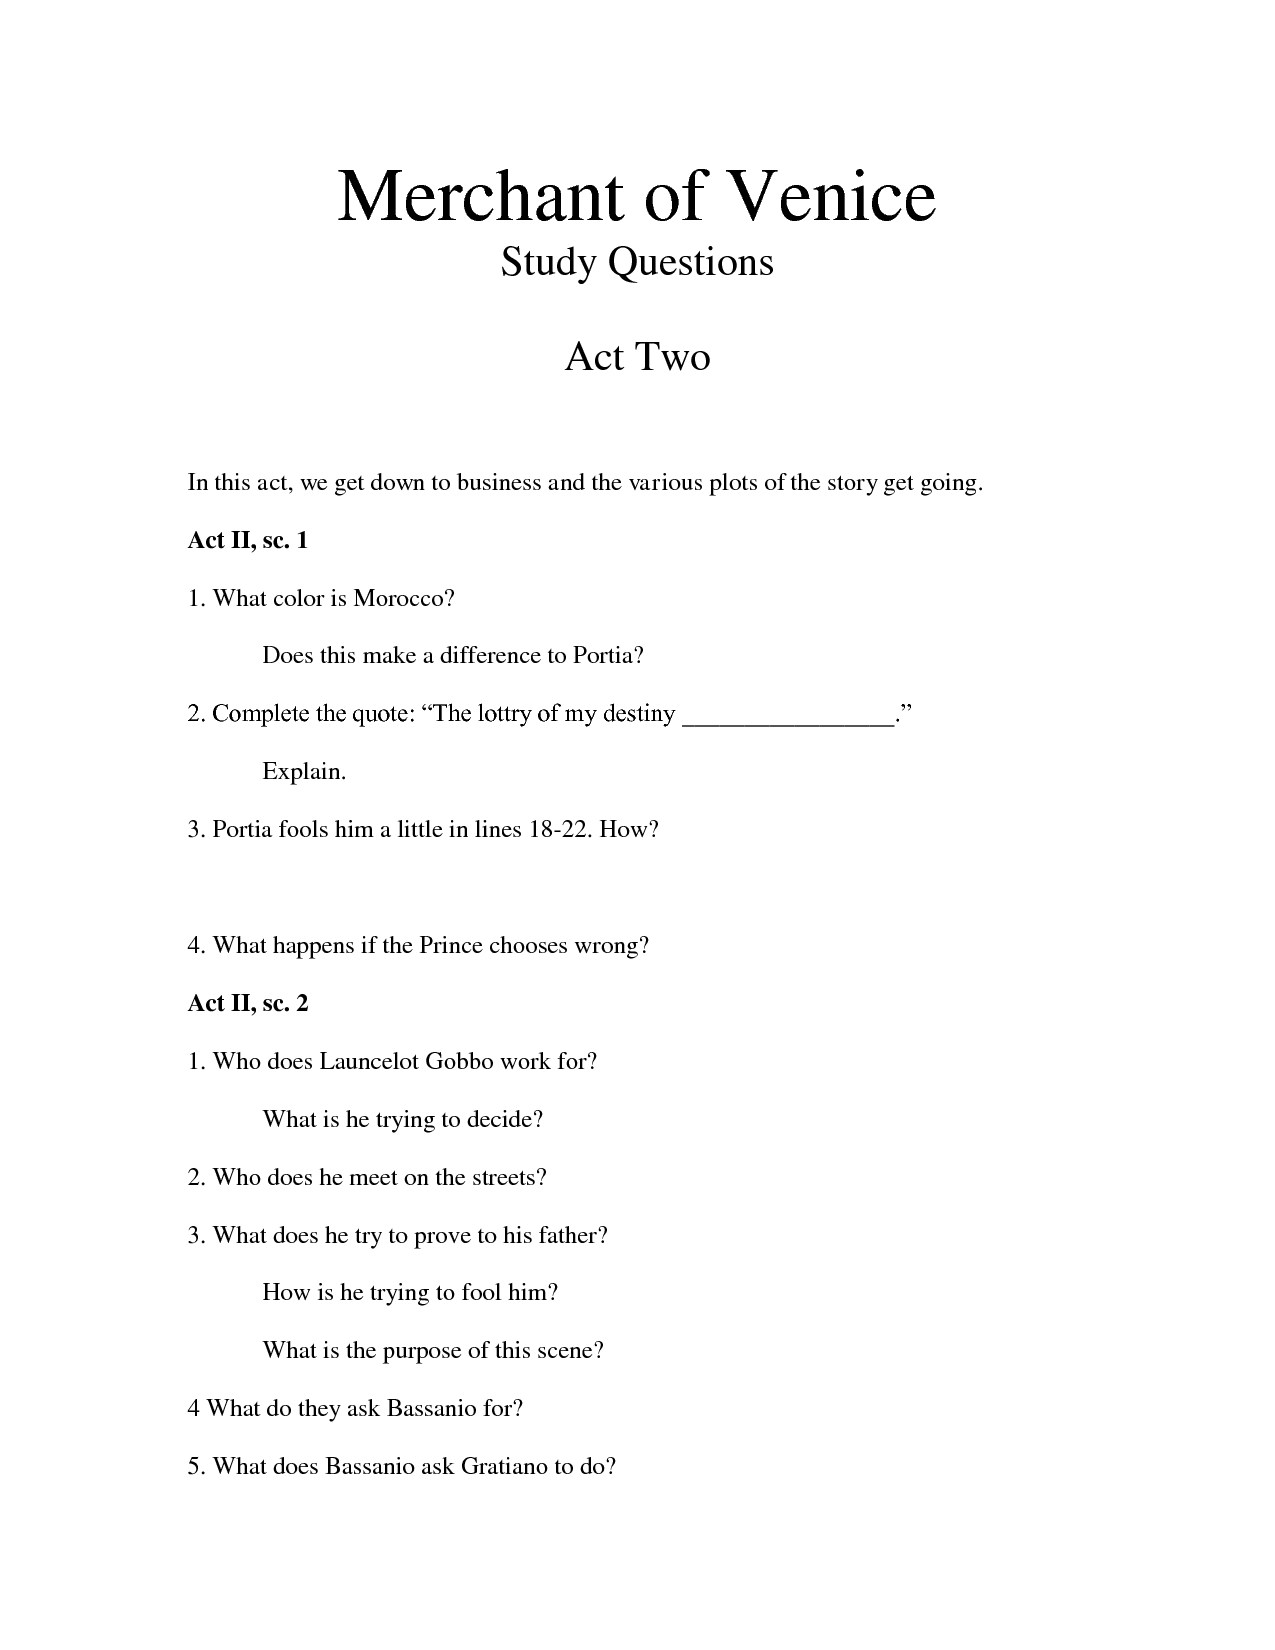 famous love quotes from merchant of venice valentine day famous love quotes from merchant of venice valentine day